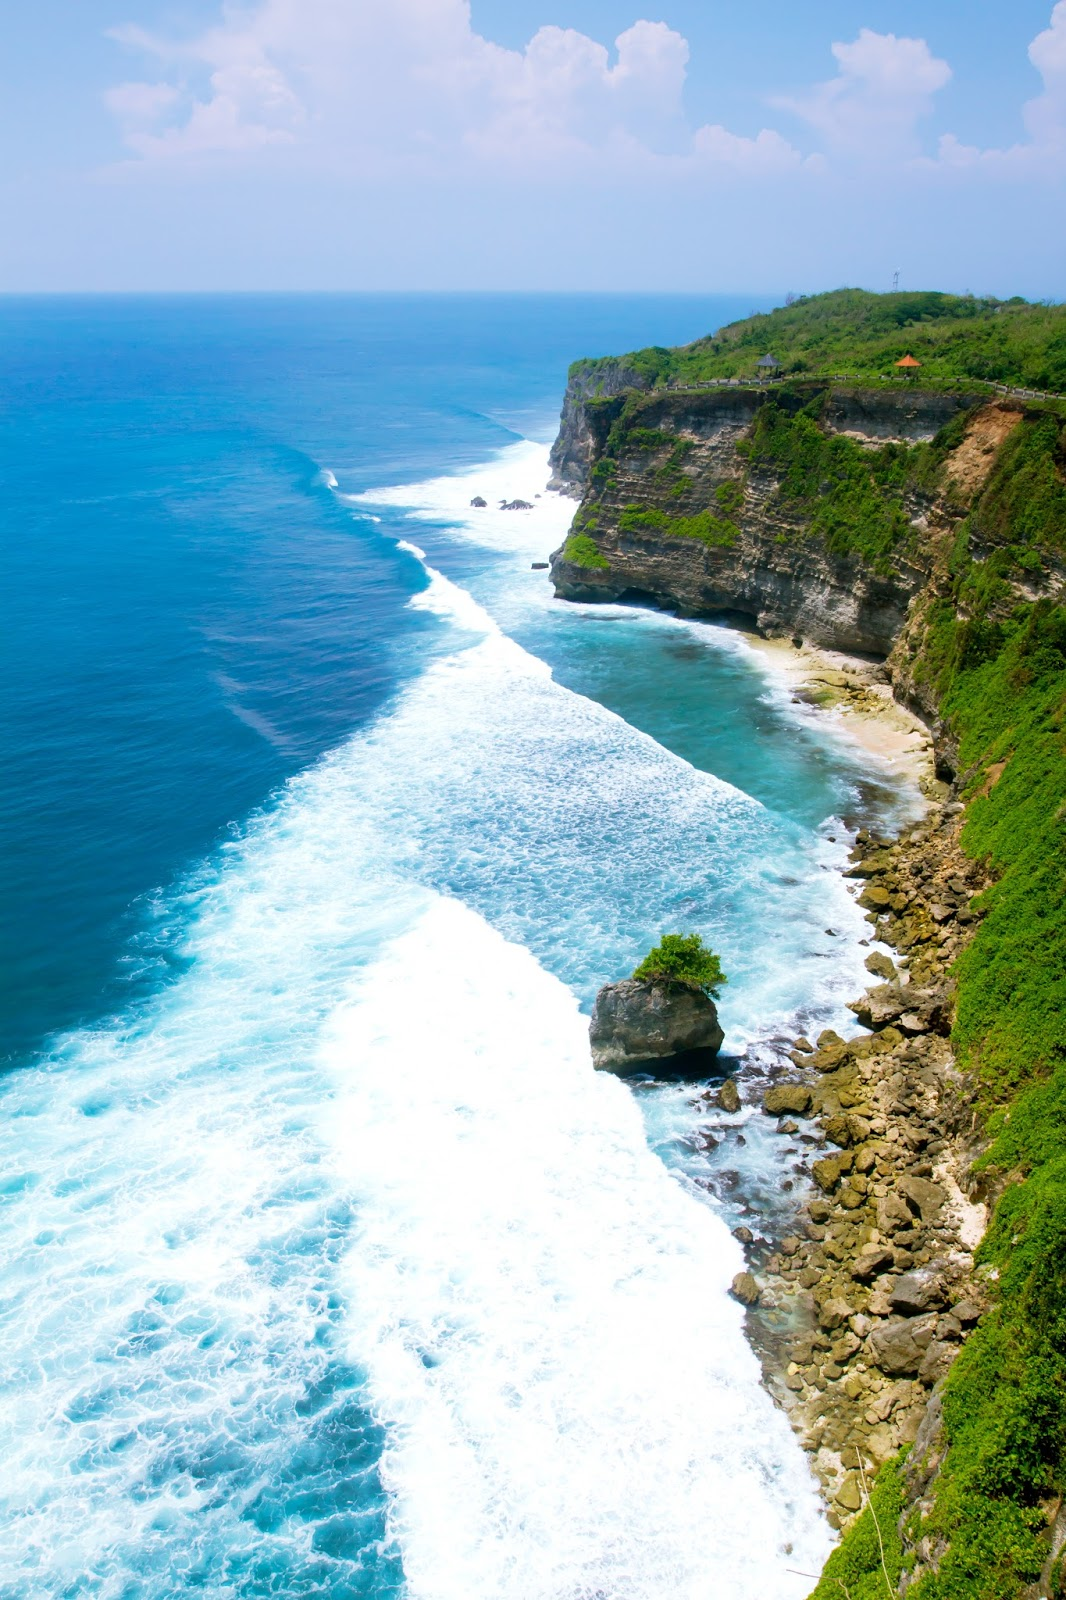 beautiful views at Uluwatu Temple in Bali, Indonesia